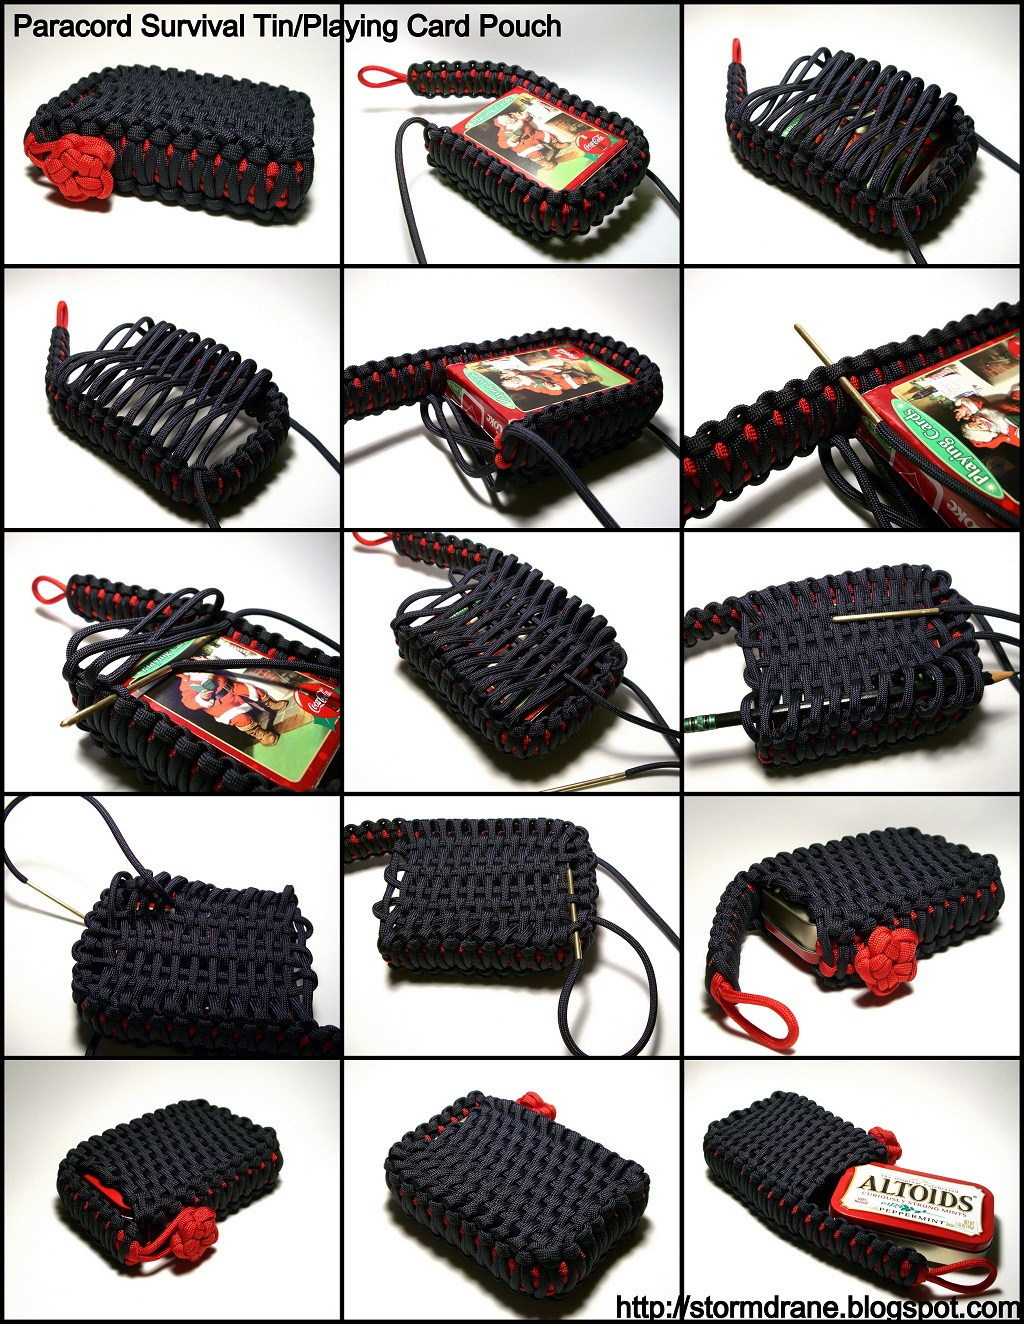 Case Design belt loop phone case : Stormdraneu0026#39;s Blog: Survival Tin/Playing Card EDC Paracord Pouch...